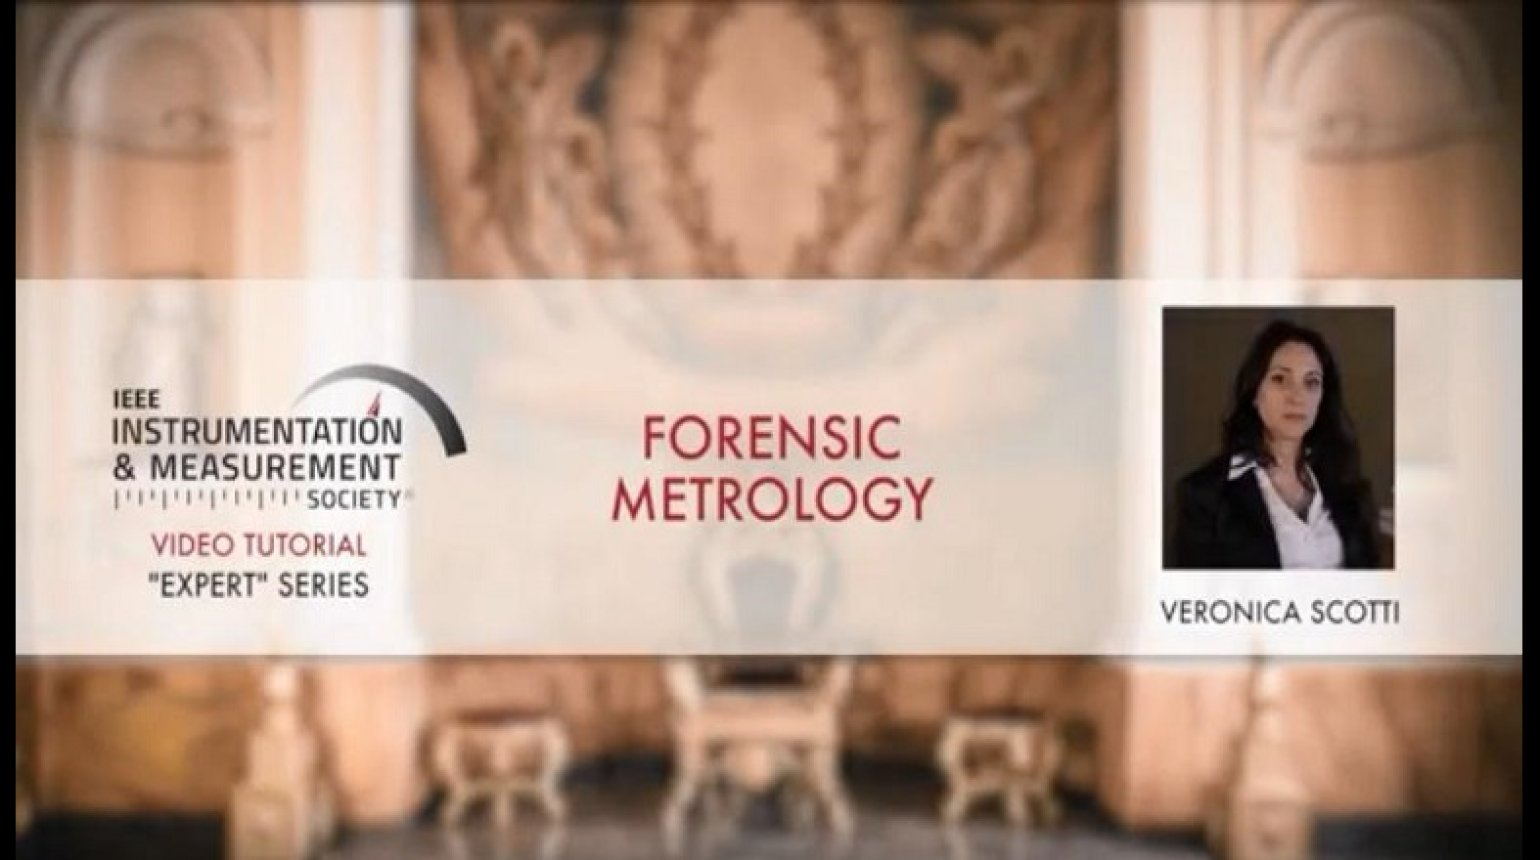 Forensic Metrology